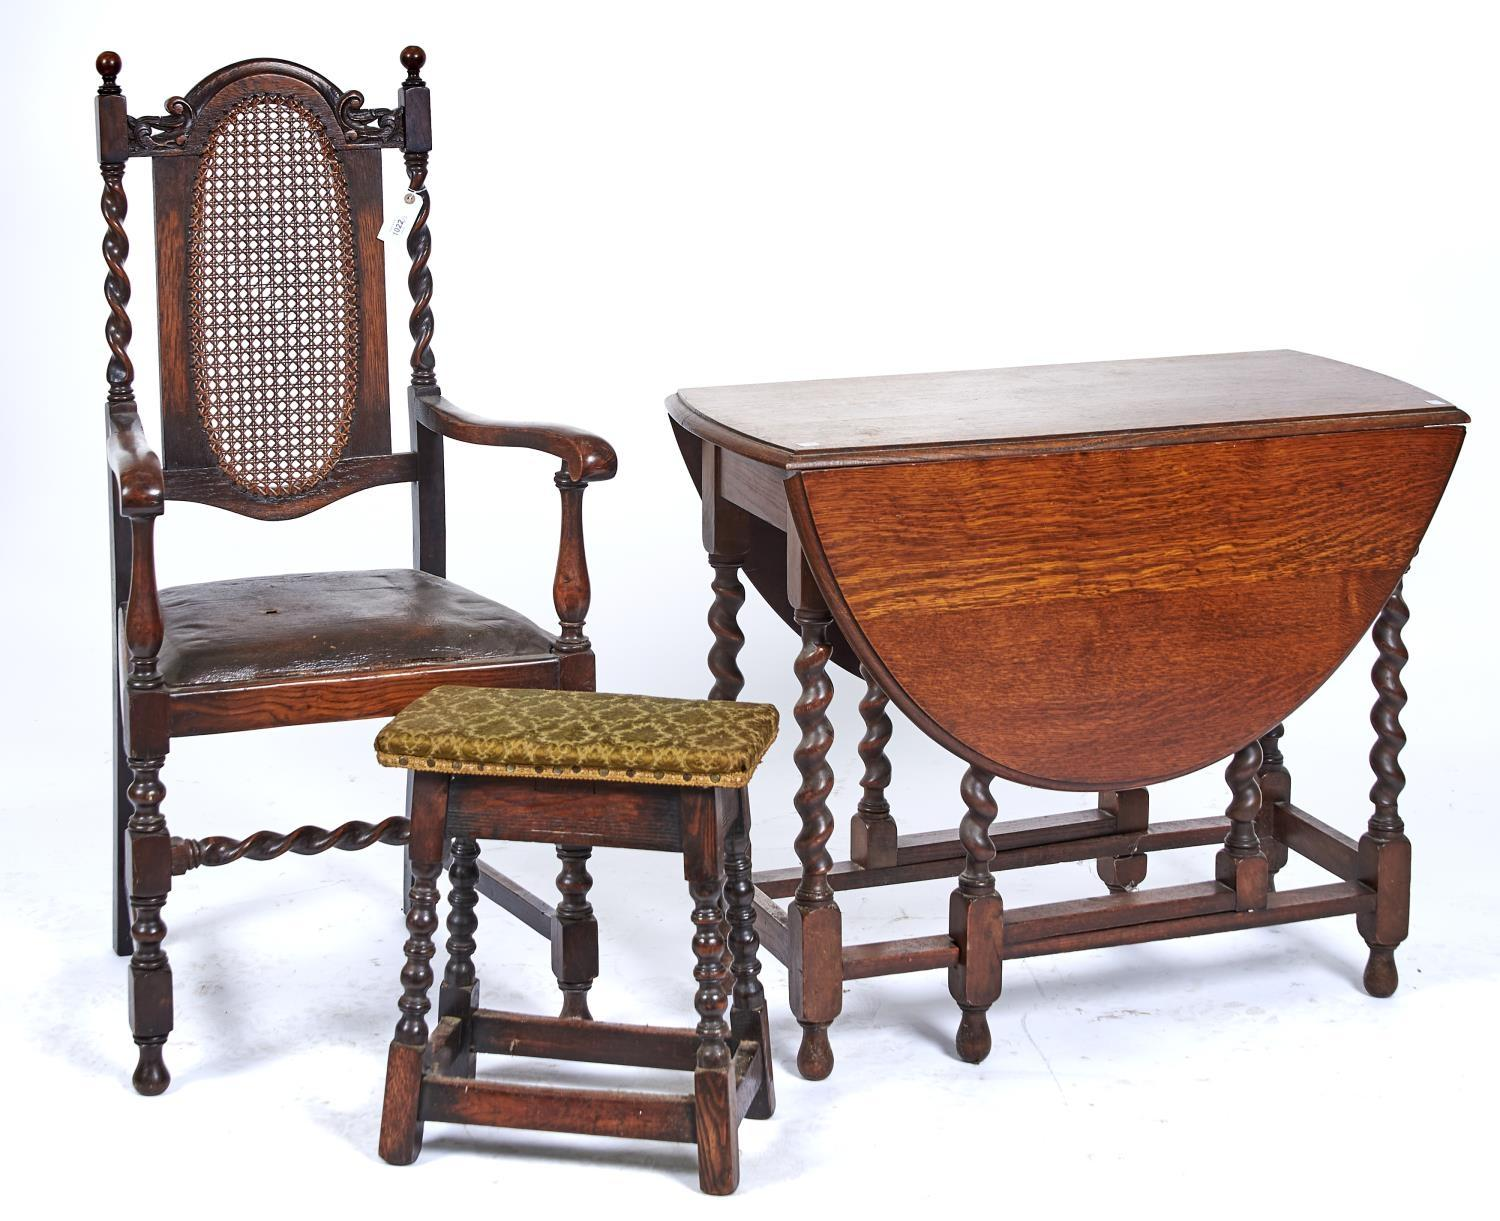 AN OAK OVAL GATELEG DINING TABLE, C1920, THE TOP WITH PAIR OF LEAVES ON BARLEY TURNED LEGS JOINED BY